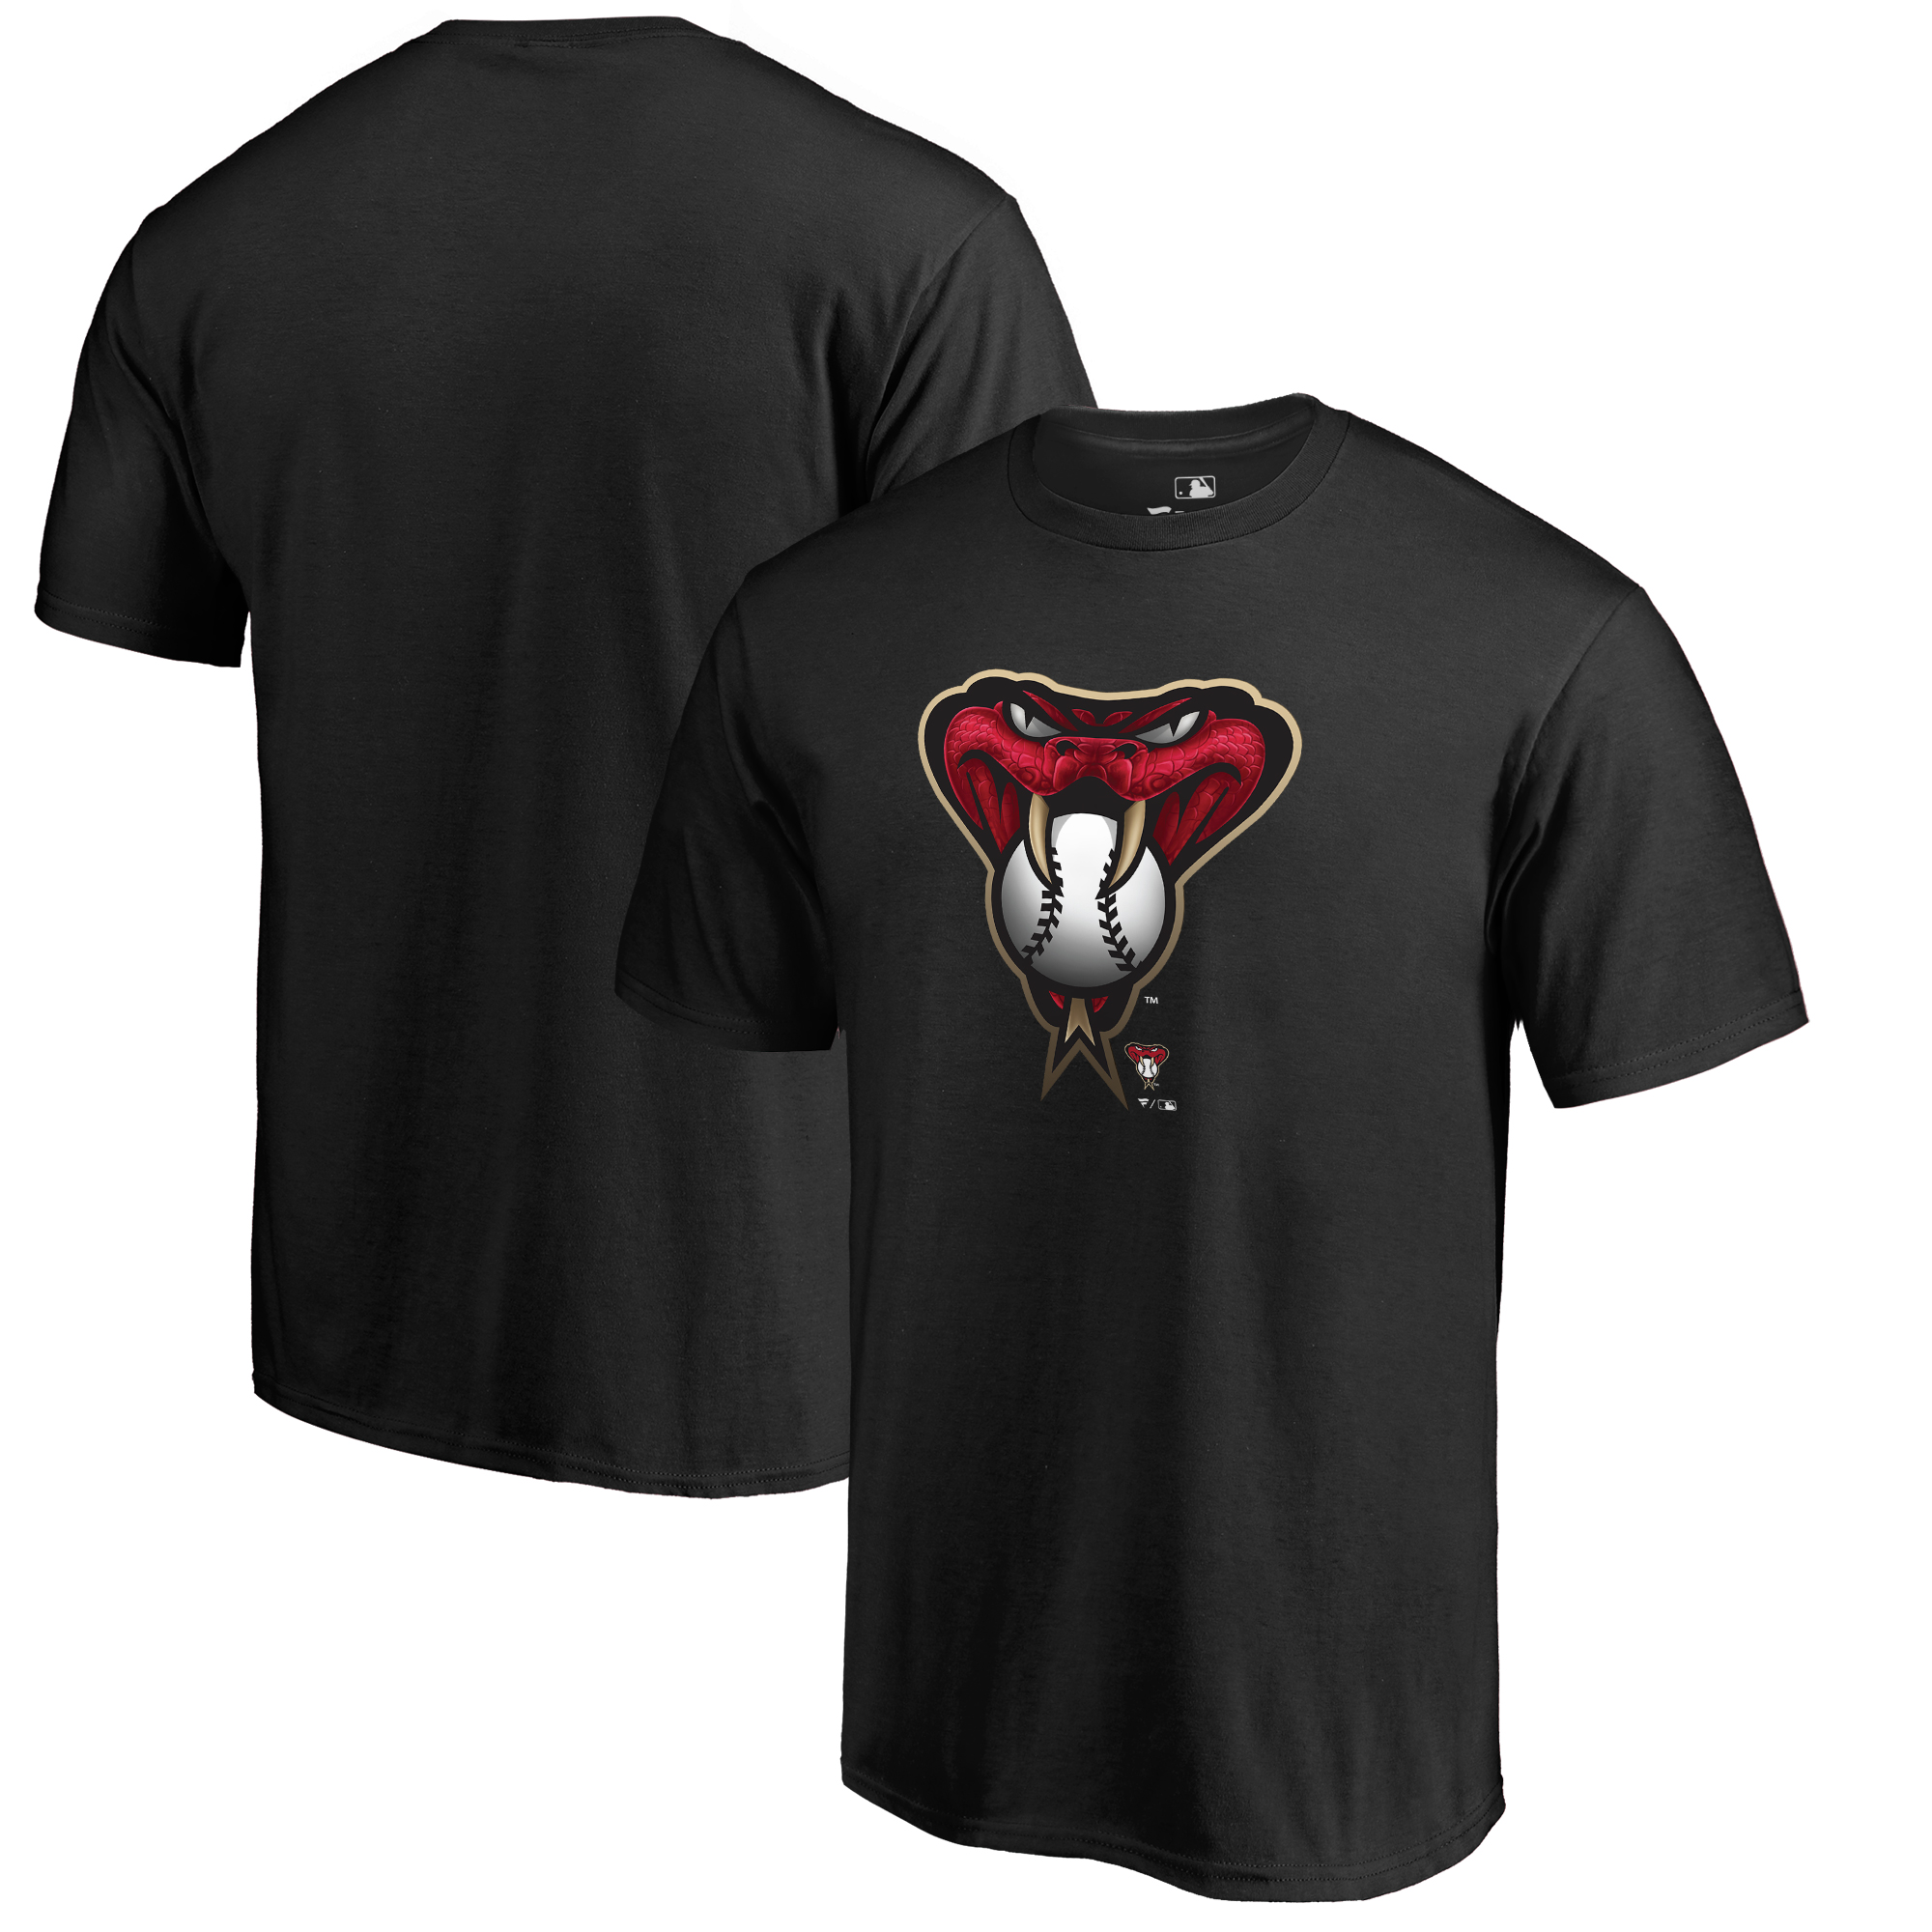 Arizona Diamondbacks Fanatics Branded Big & Tall Midnight Mascot T-Shirt - Black